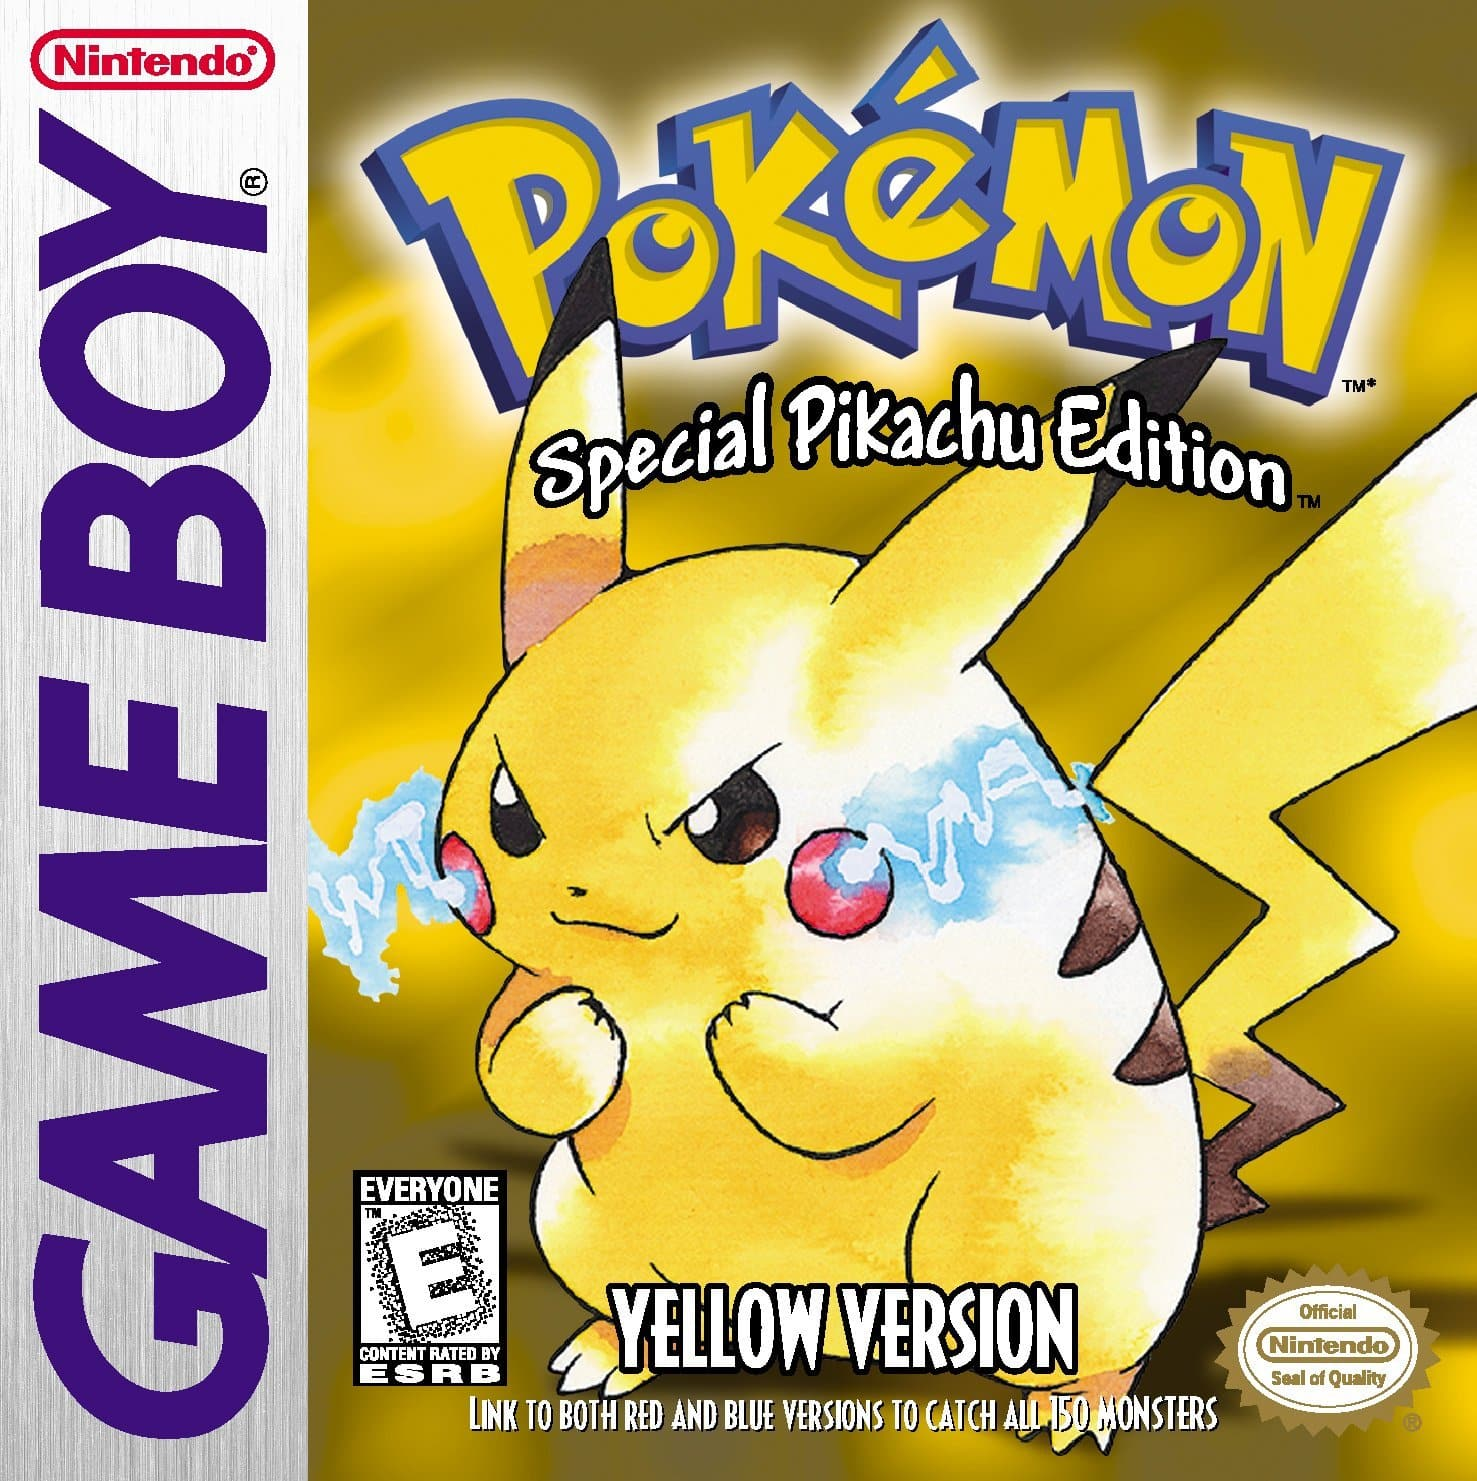 Pokemon Yellow, Red or Blue Version 3DS Digital Download Code $7.99